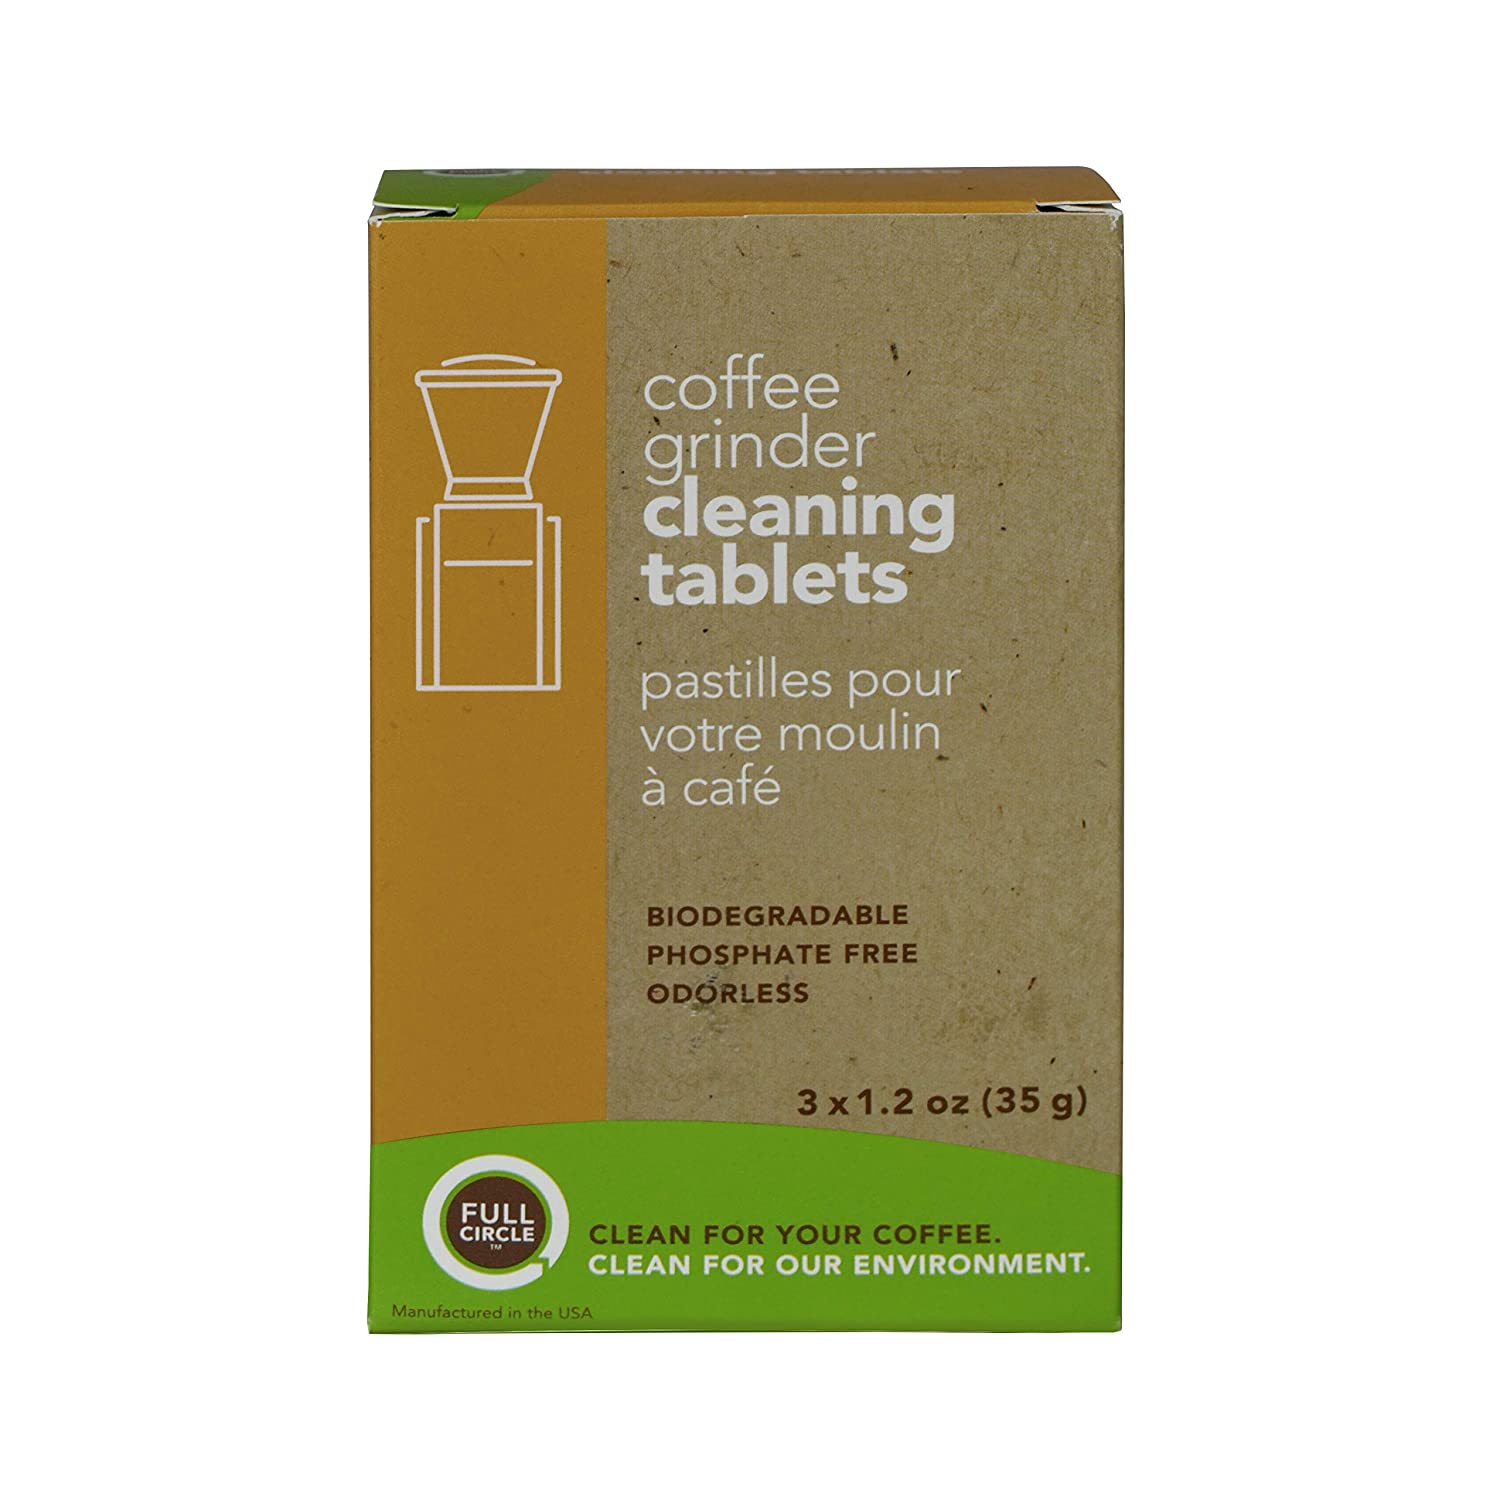 B0089RFY0M Urnex Full Circle Coffee Grinder Cleaning Tablets - 3 Single Use Packets - Coffee Grinder Cleaner Removes Coffee Residue and Oils 81HcoxCmtEL